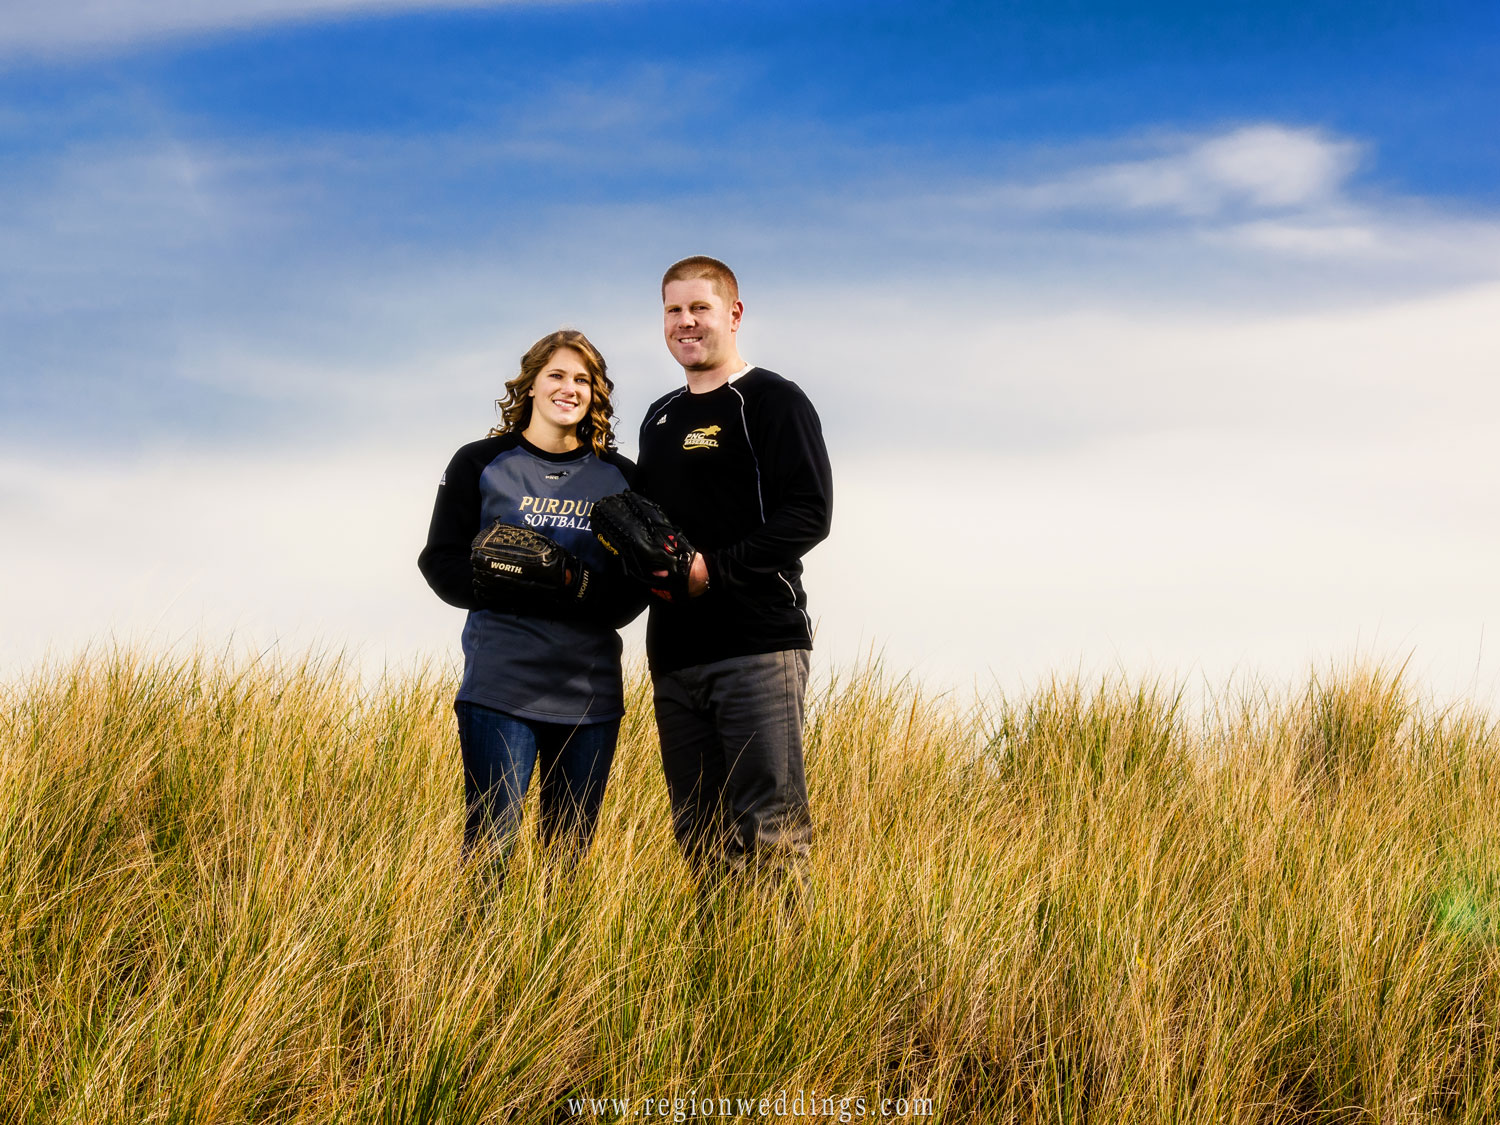 A couple shows off Purdue pride in their engagement photo at the Indiana Dunes.